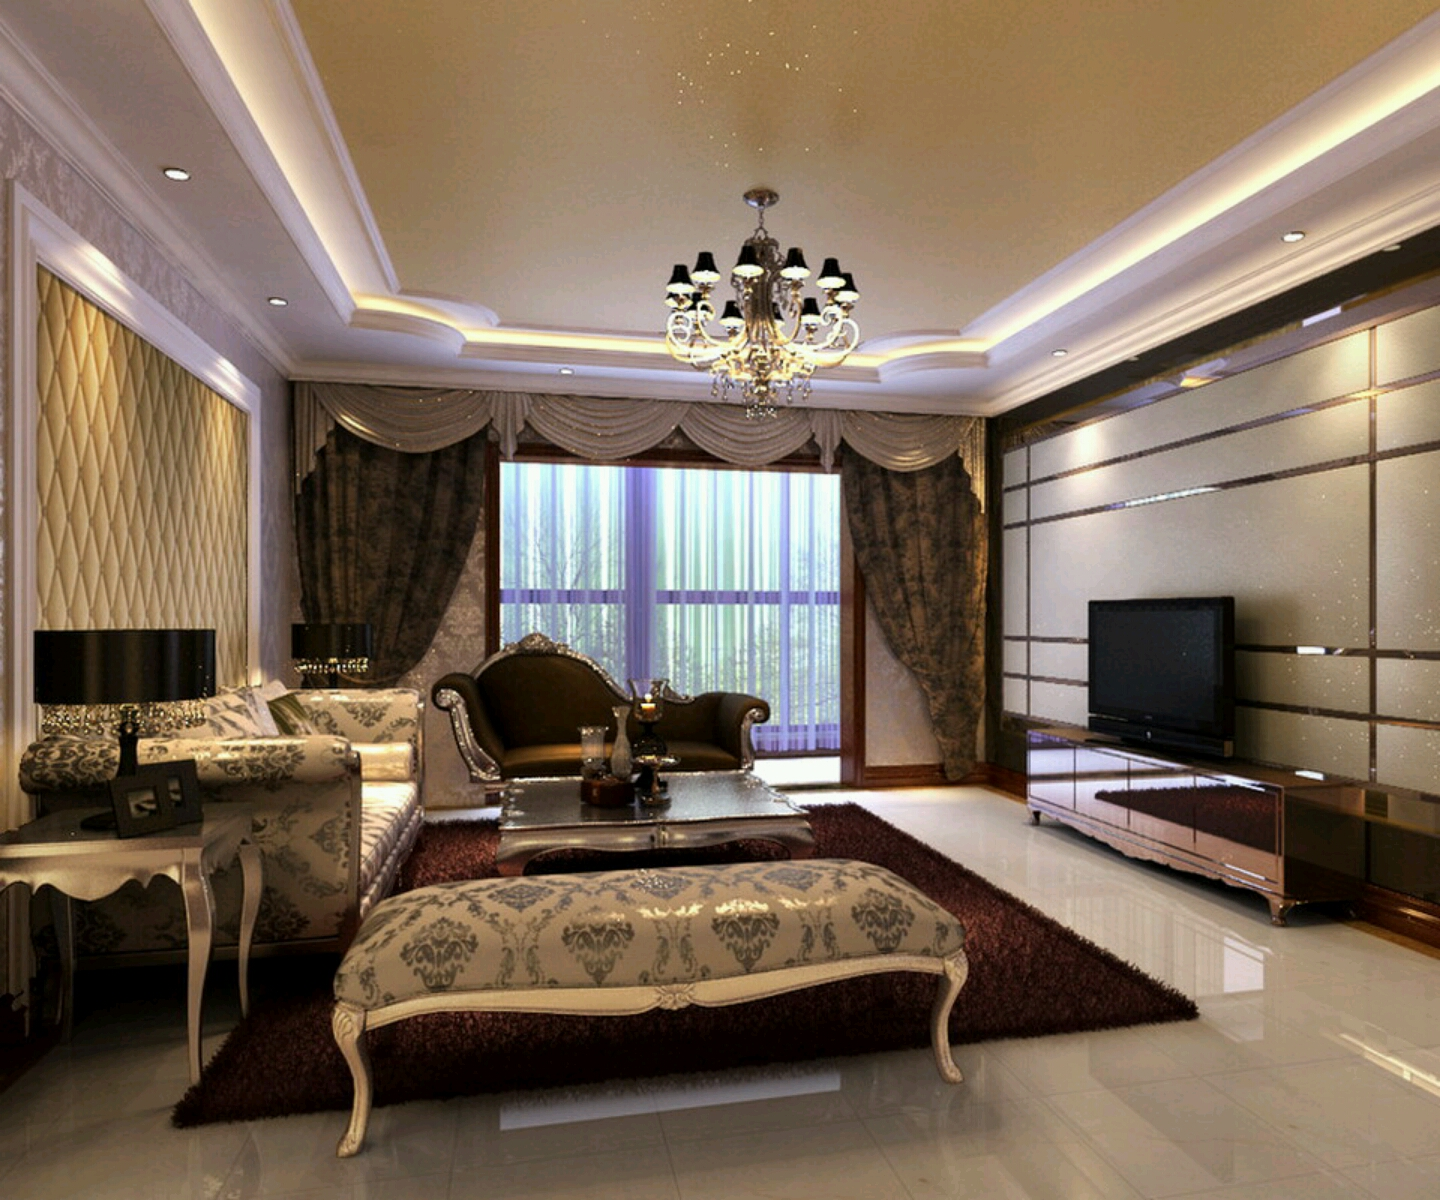 New home designs latest luxury homes interior decoration for Latest living room designs 2013